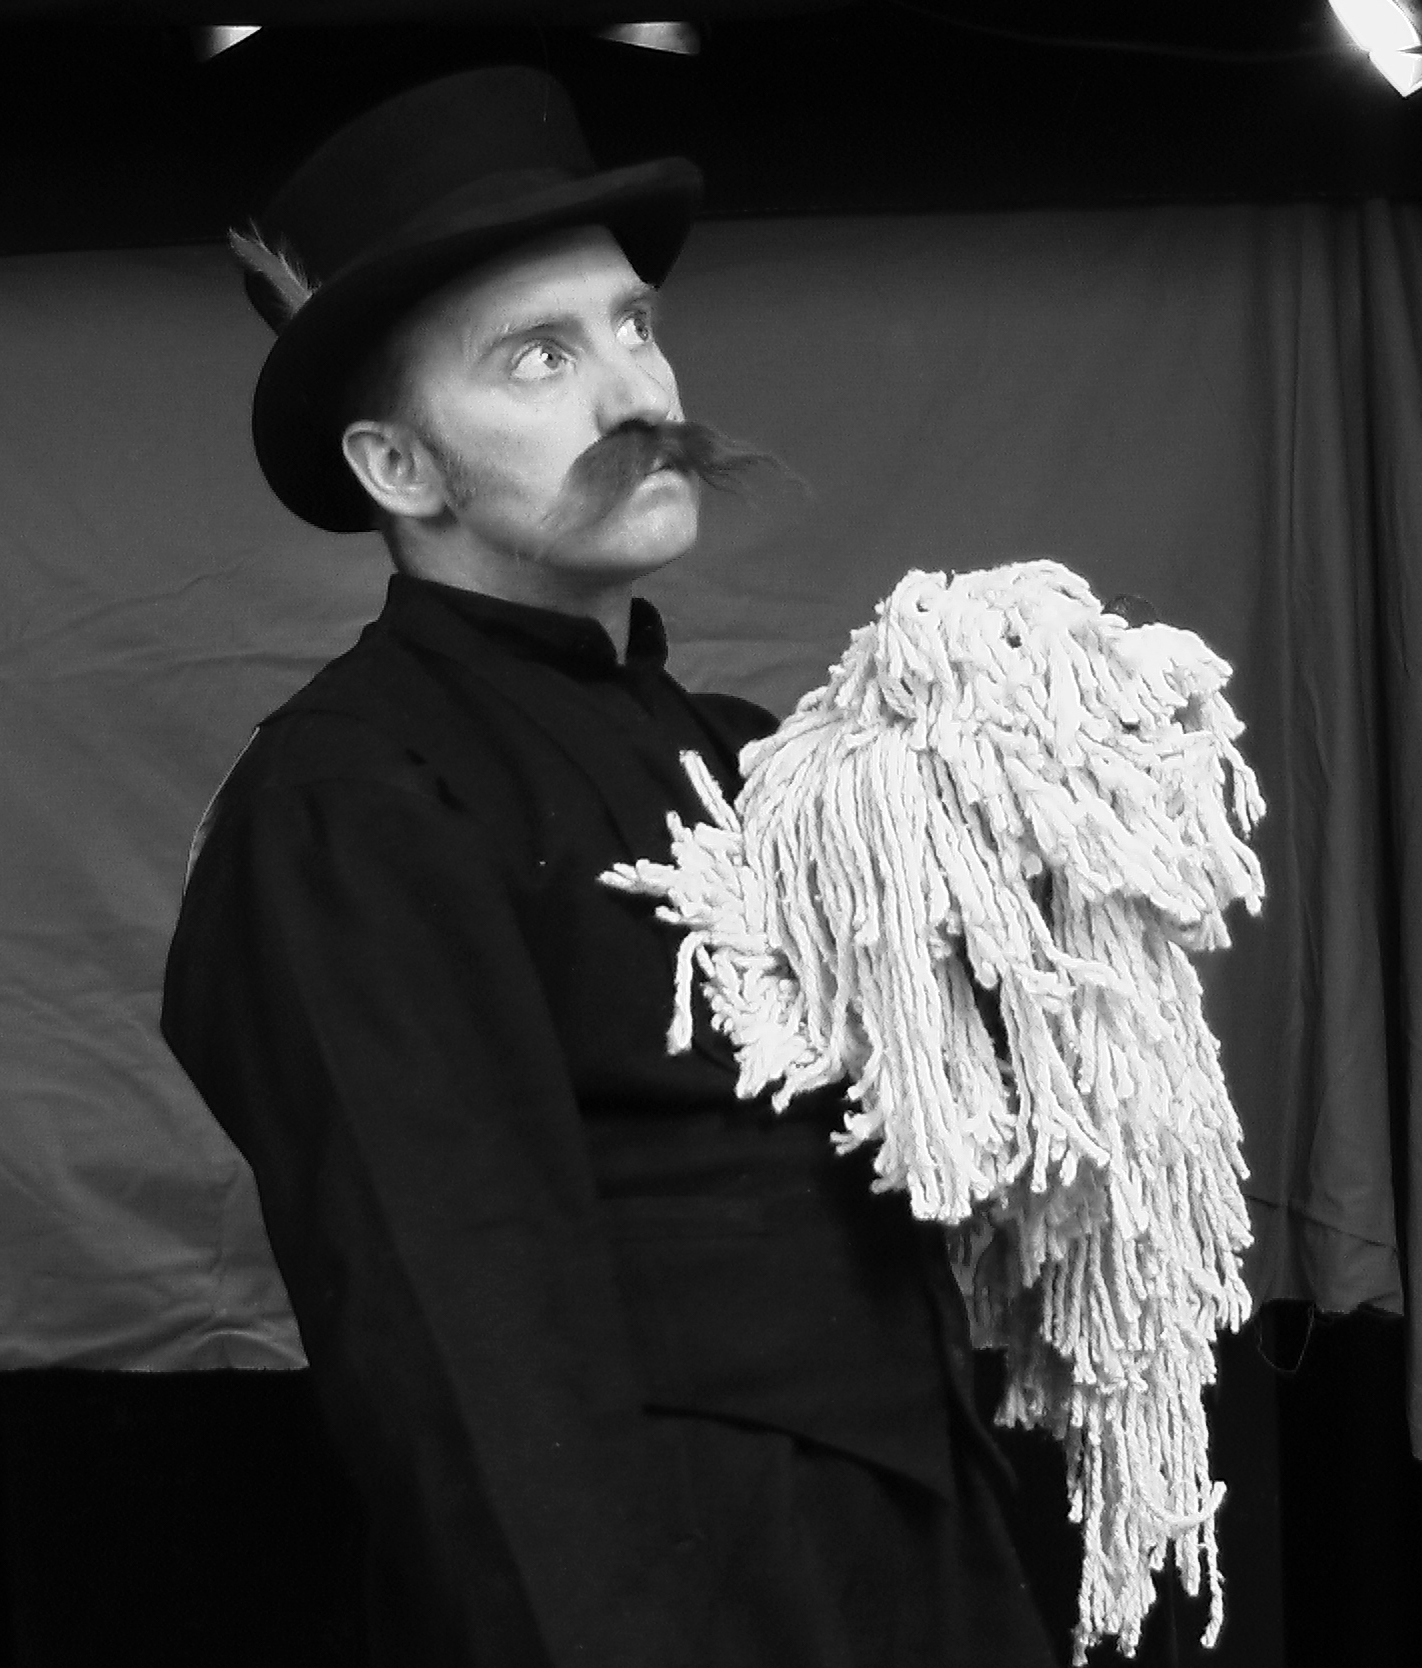 « Me and my dog », dans <em>The Circus Stachamoose</em> par Thomas Baker de Your Man's Puppets (Galway, Irlande)